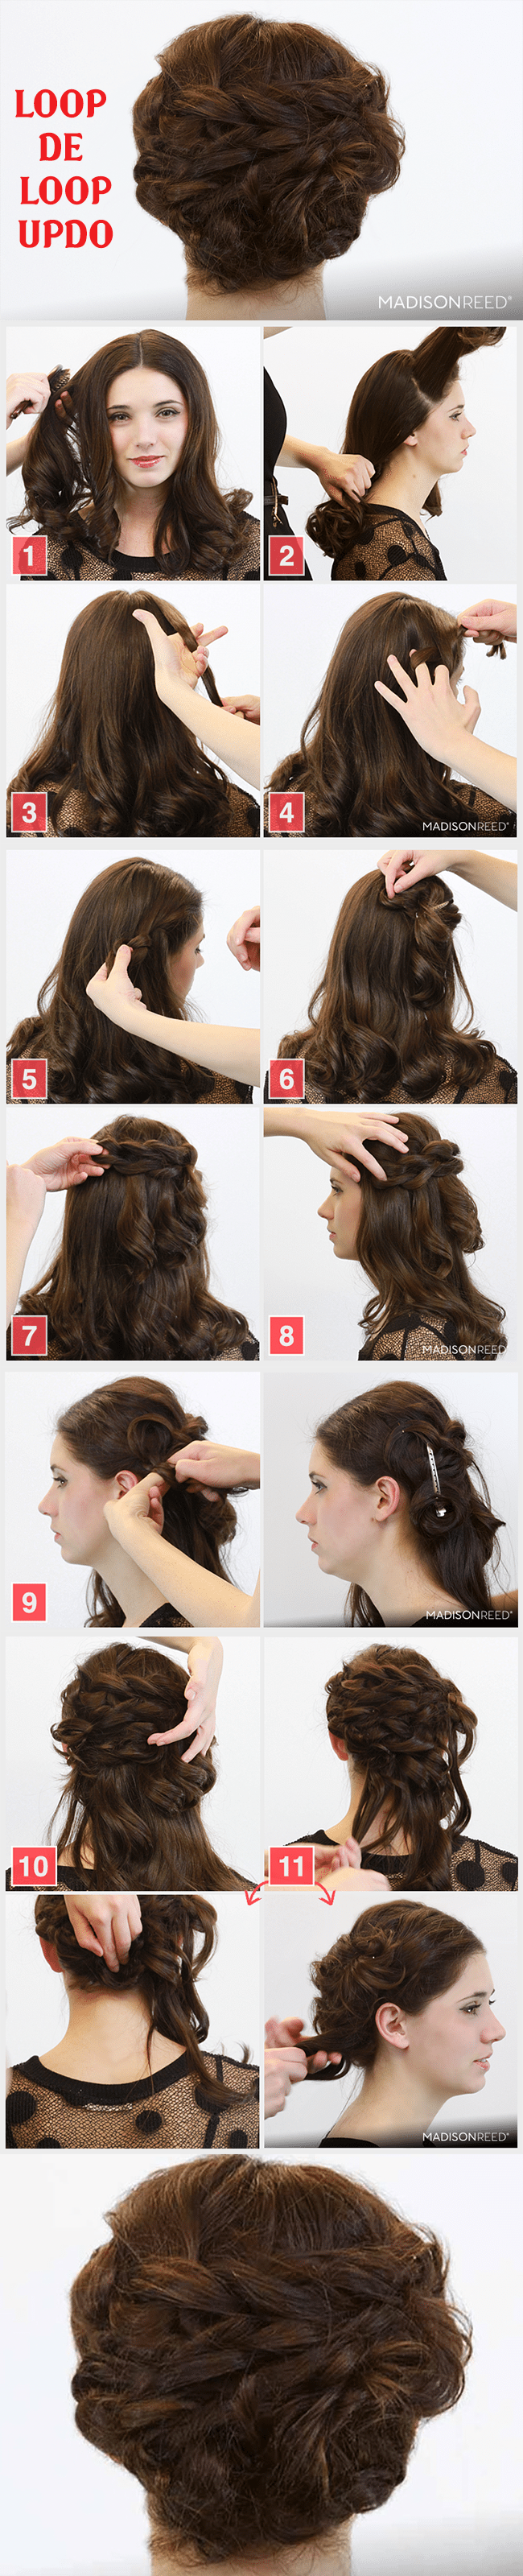 LOOP DE LOOP UPDO HAIRSTYLE